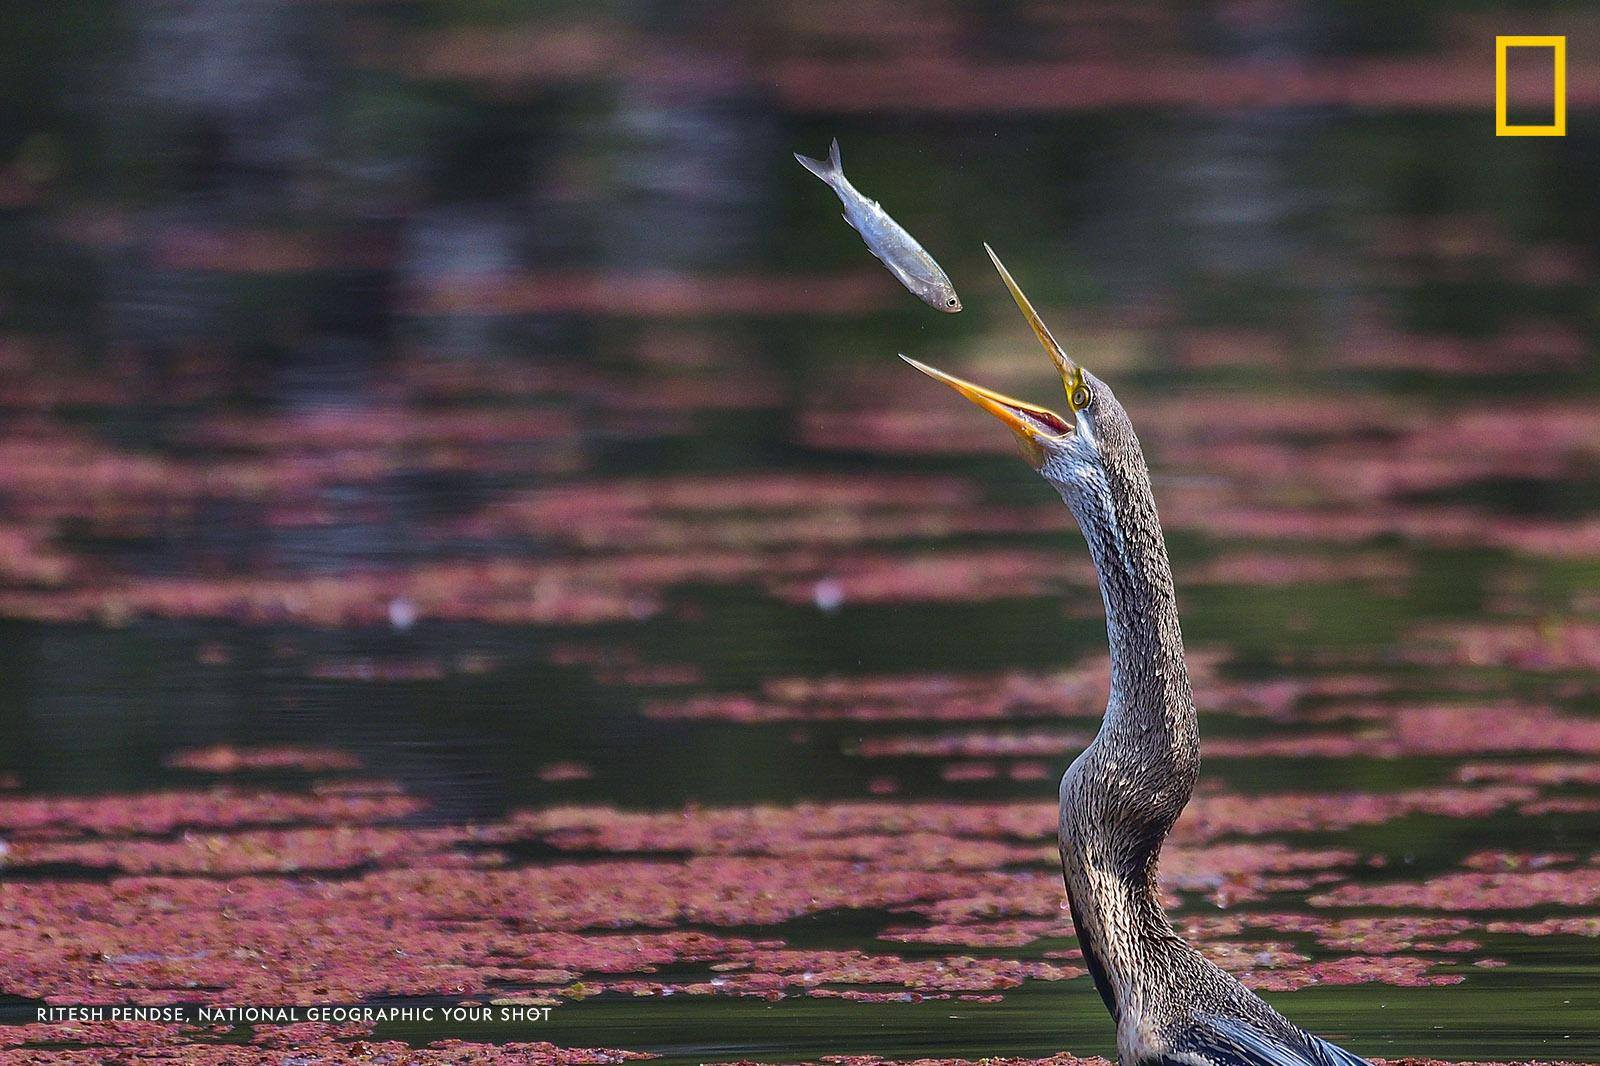 Help us caption this image by Your Shot photographer Ritesh Pendse: https://on.natgeo.com/2liWcy6